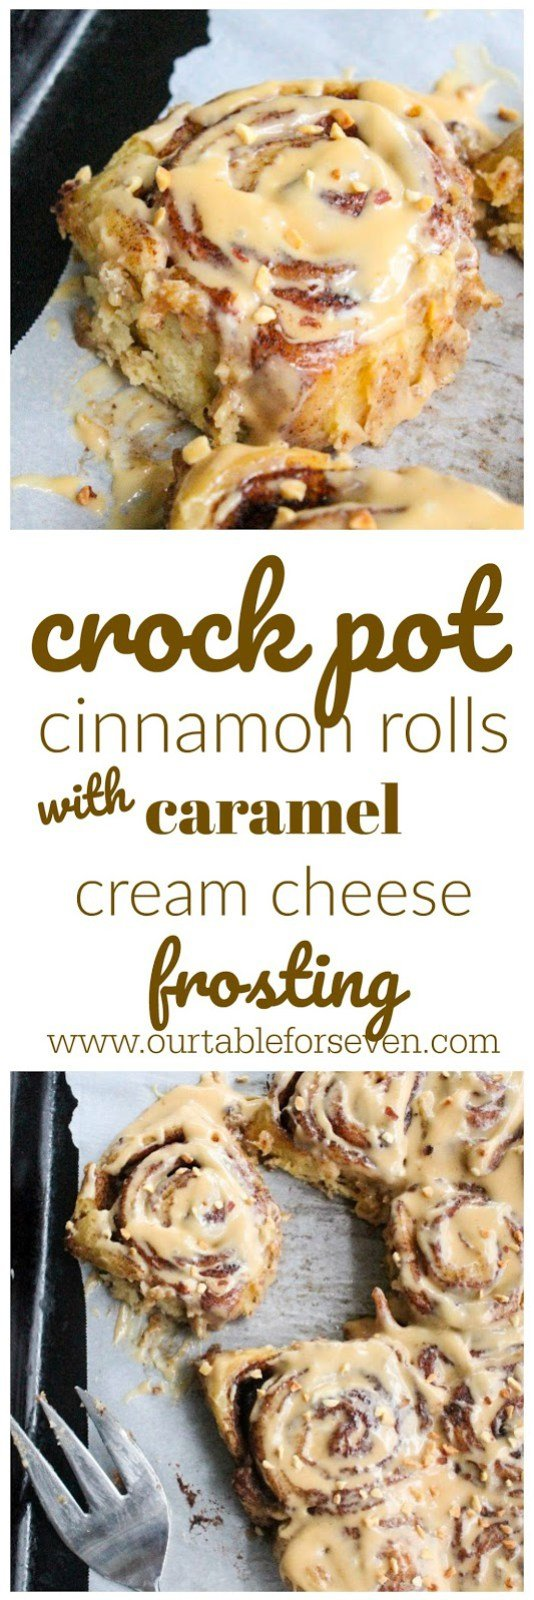 Crock Pot Cinnamon Rolls with Caramel Cream Cheese Frosting from Table for Seven